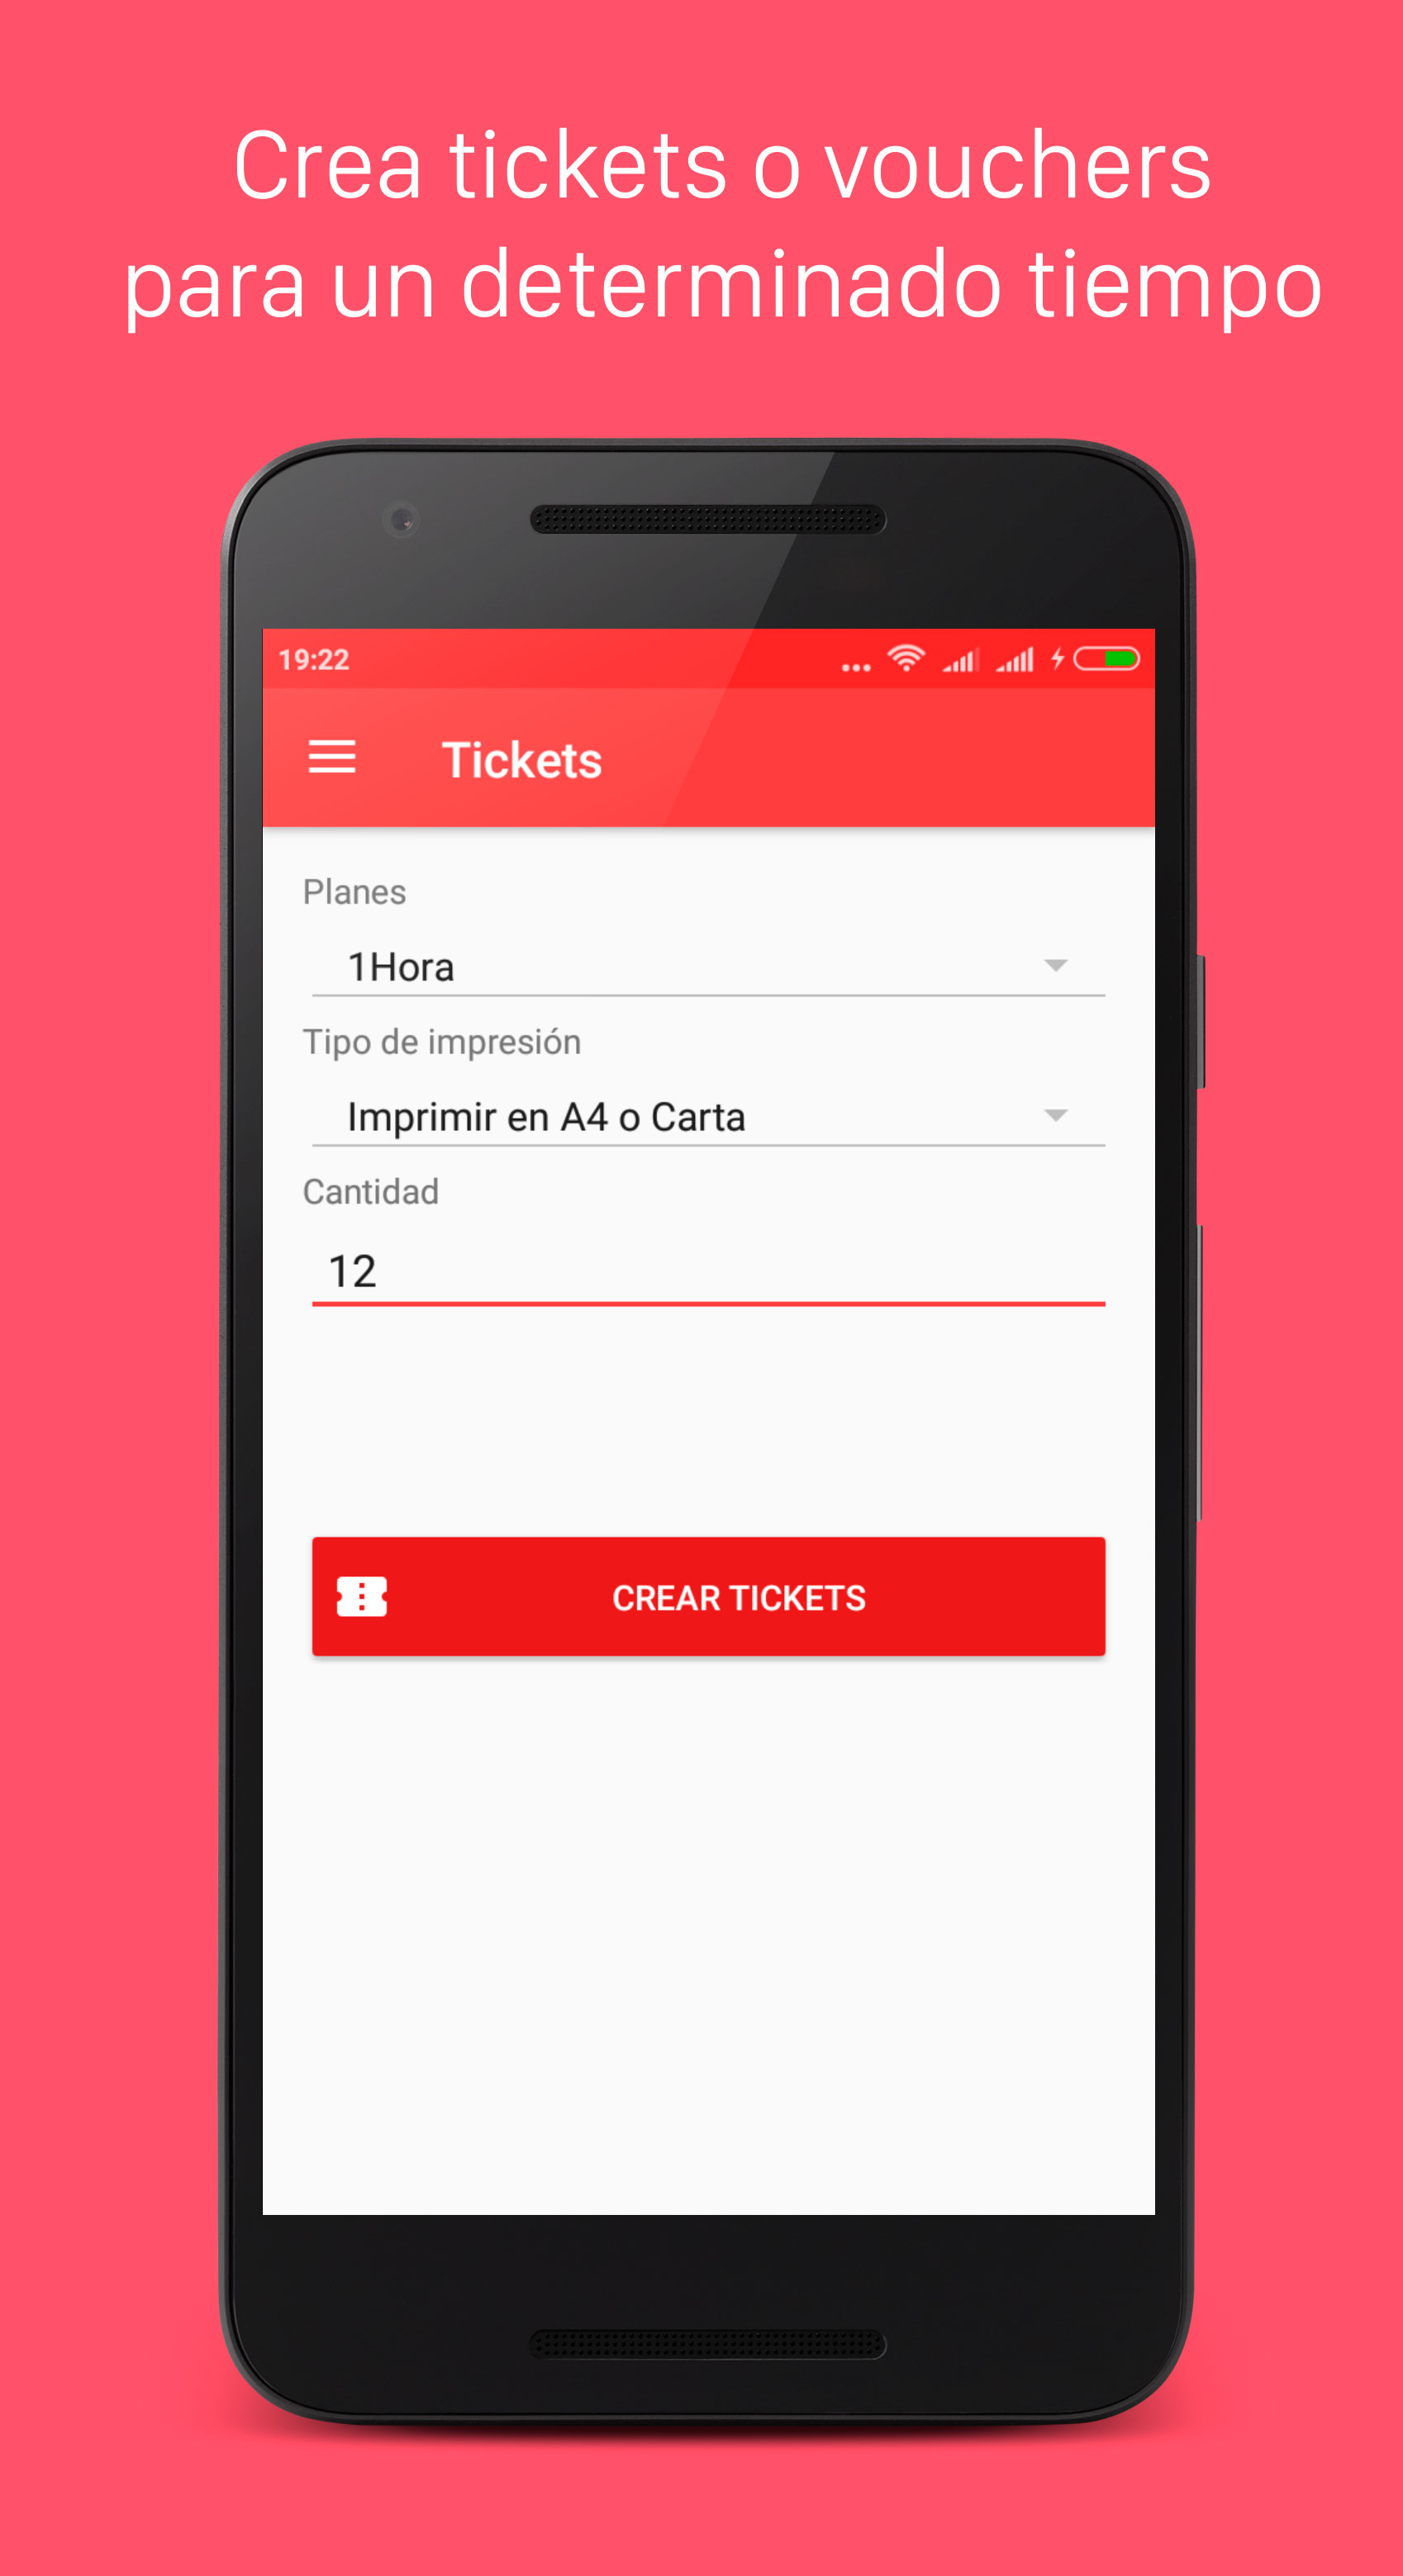 mikroticket_ticket_voucher